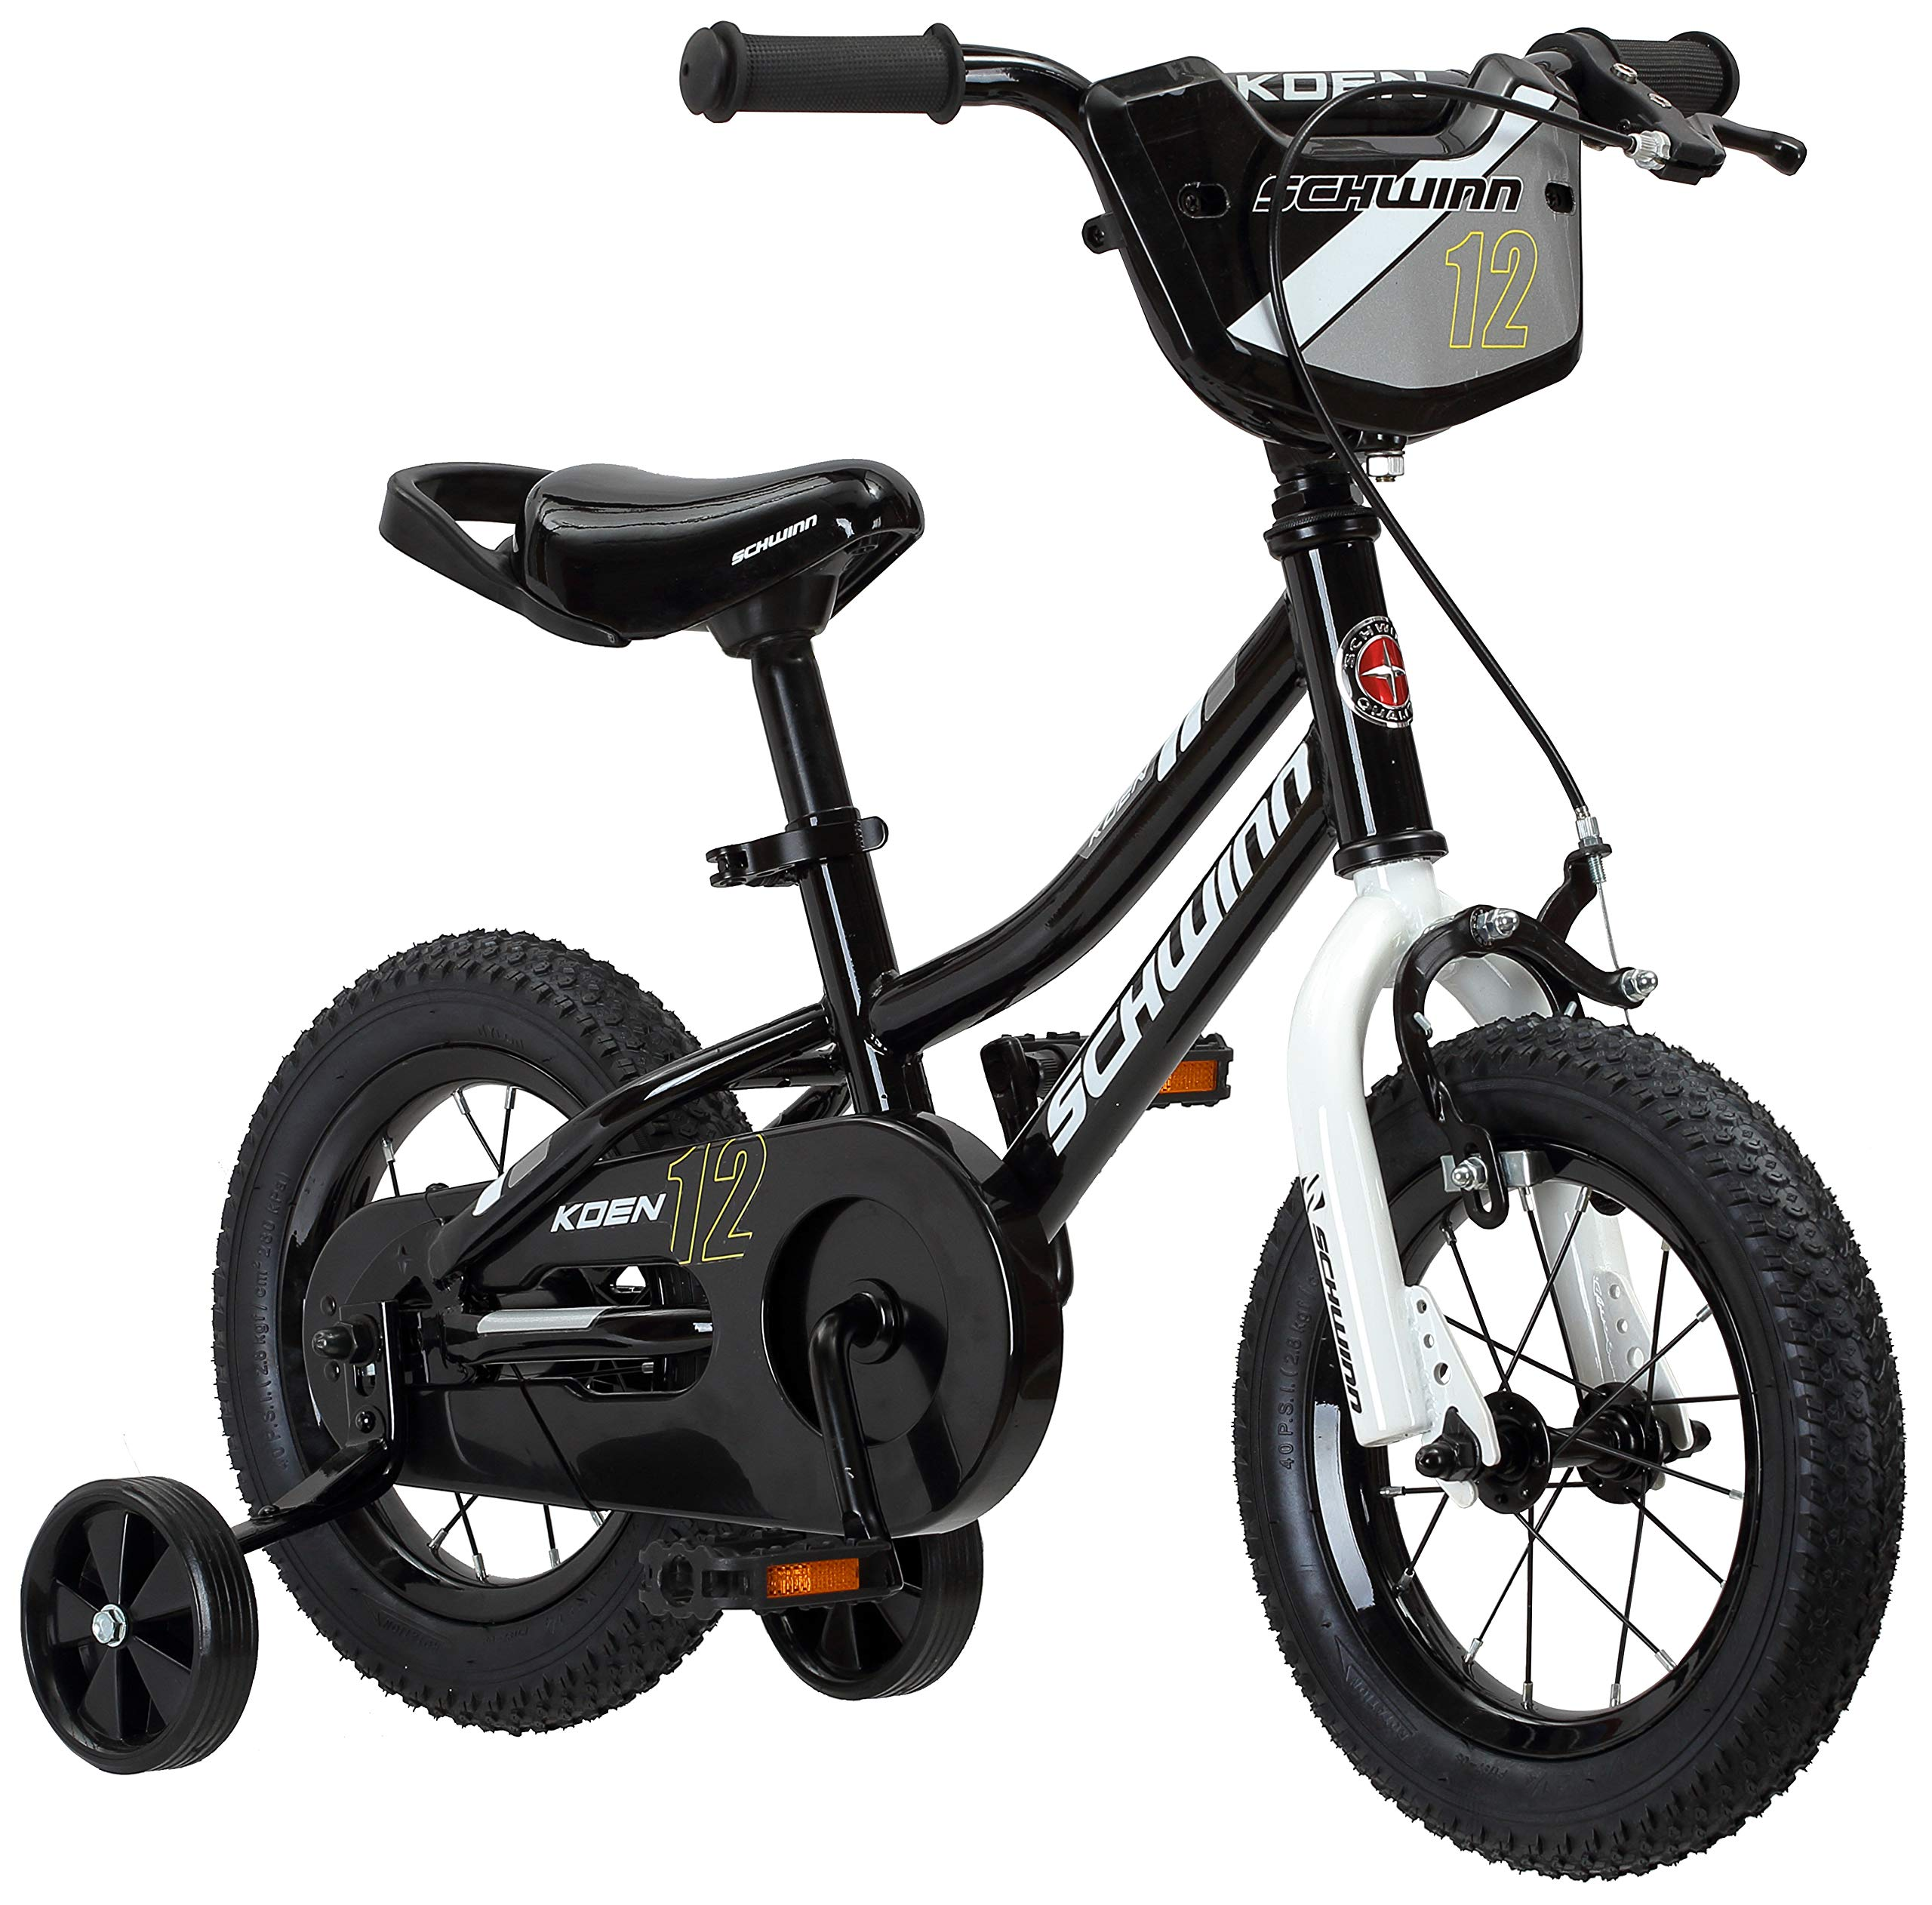 Schwinn Koen Boy's Bike|Kids Bikes|Boys Bikes|Child Bikes